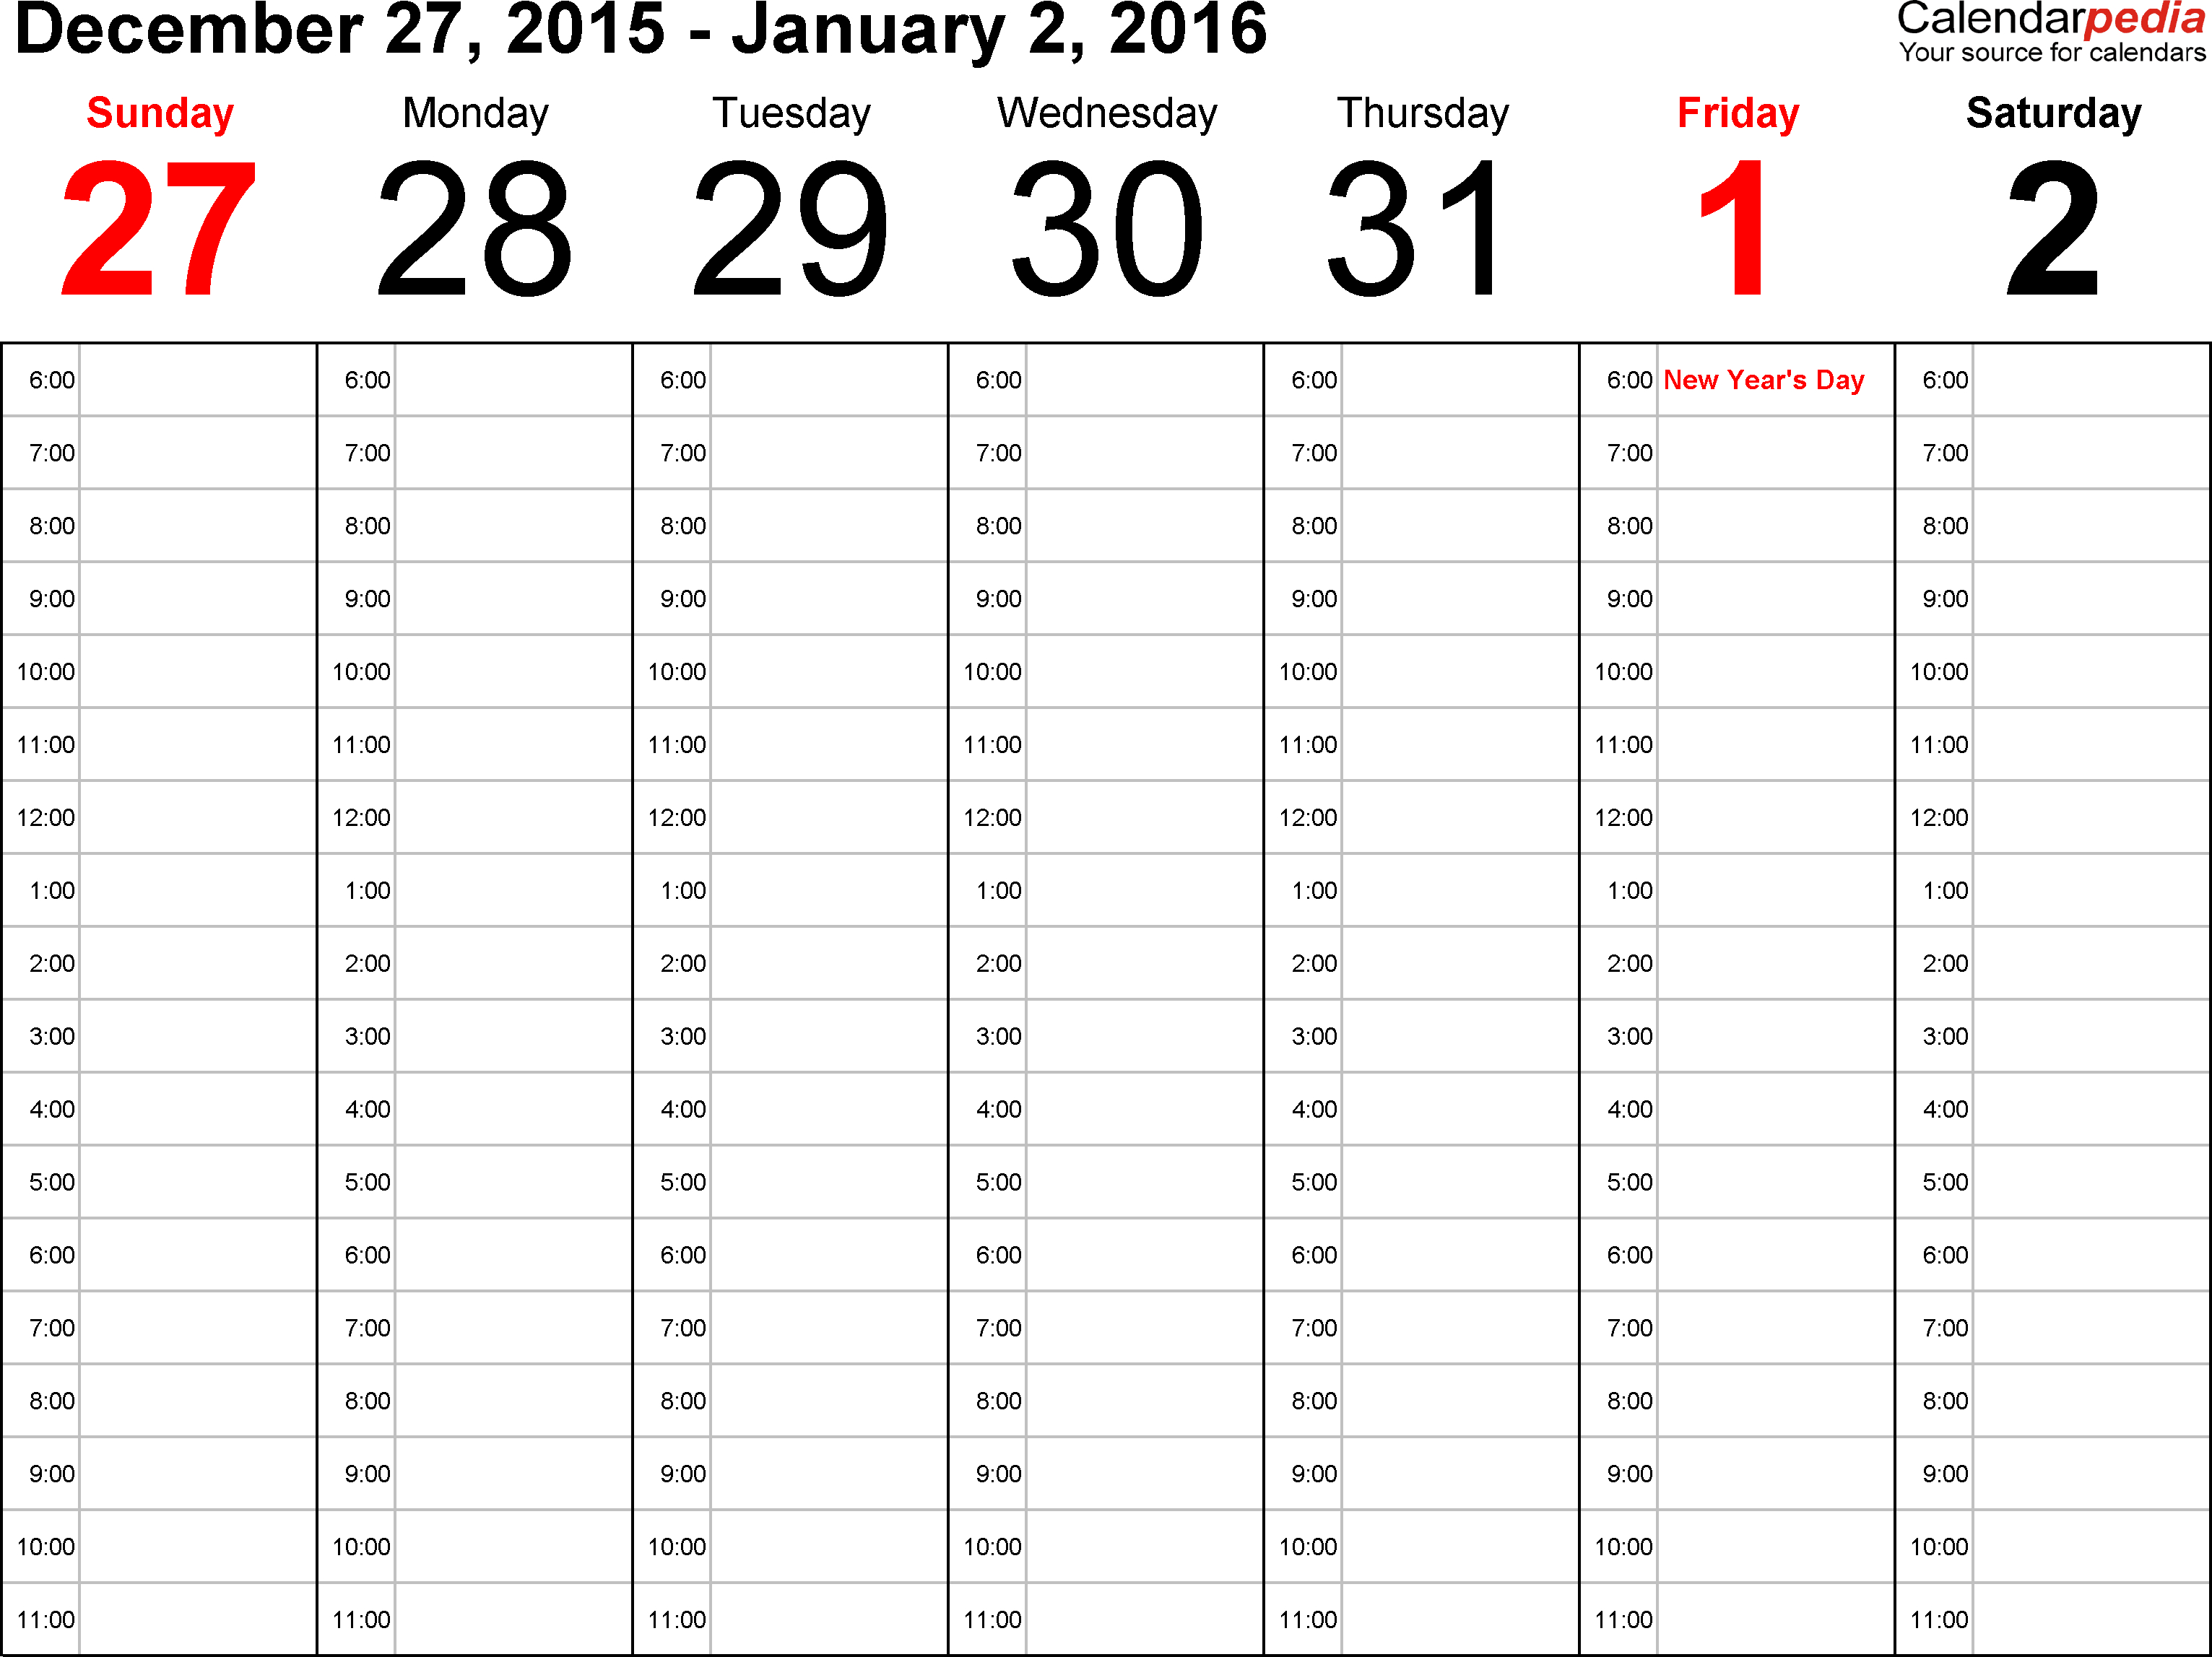 Weekly Calendar 2016 For Word - 12 Free Printable Templates pertaining to Blank Time And Date Calendar